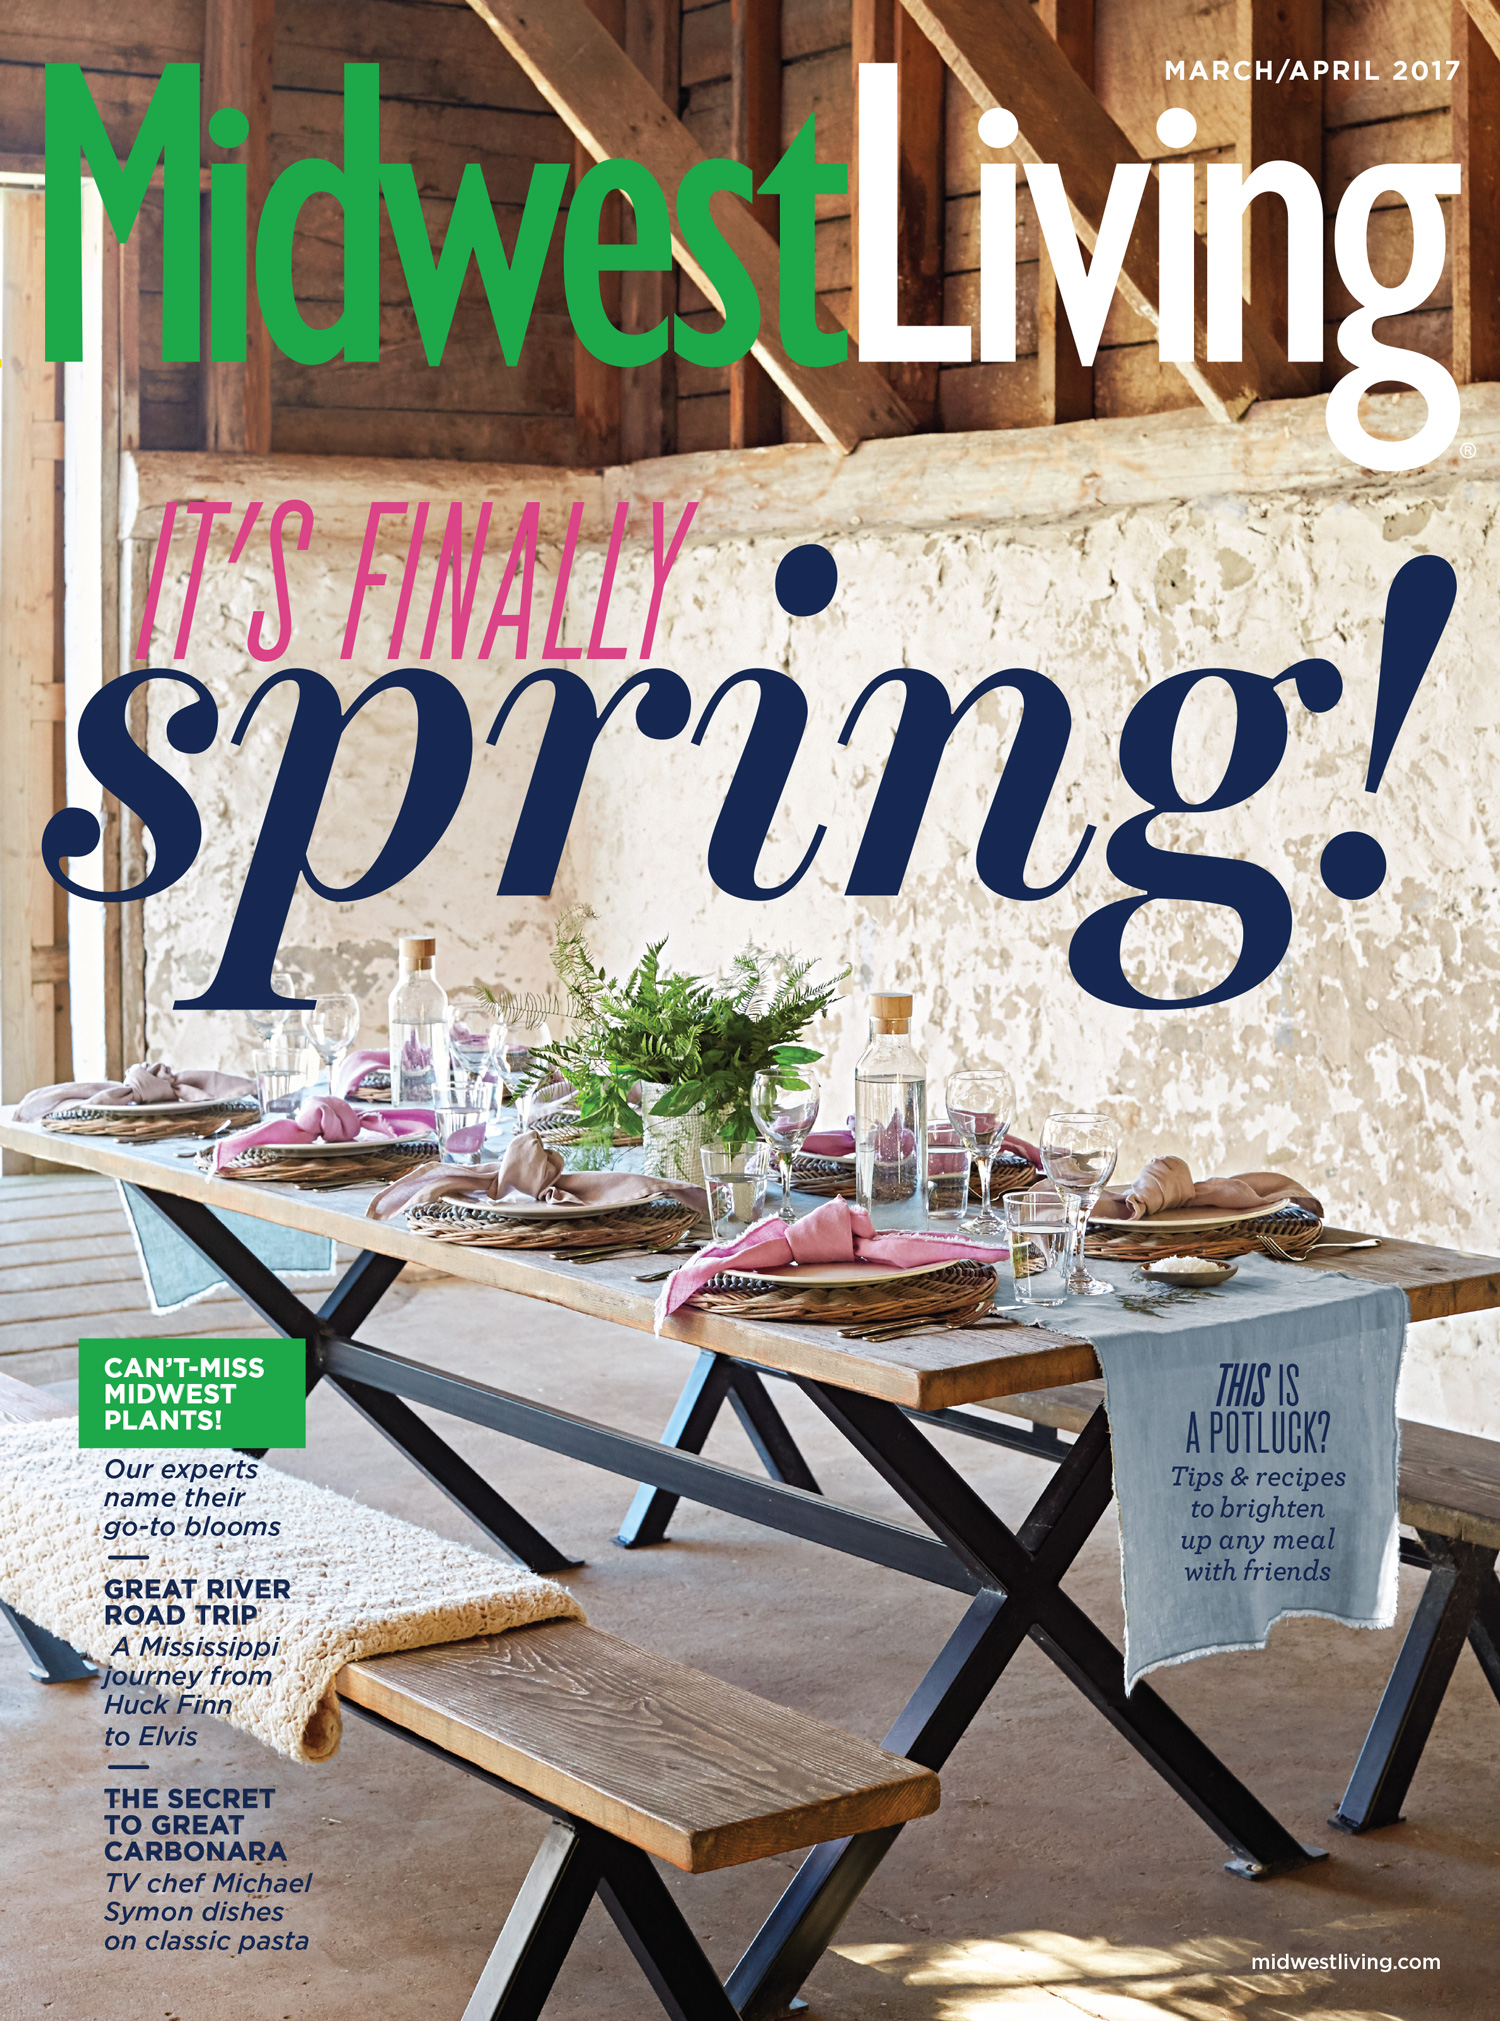 midwest living march april 2017 issue | midwest living